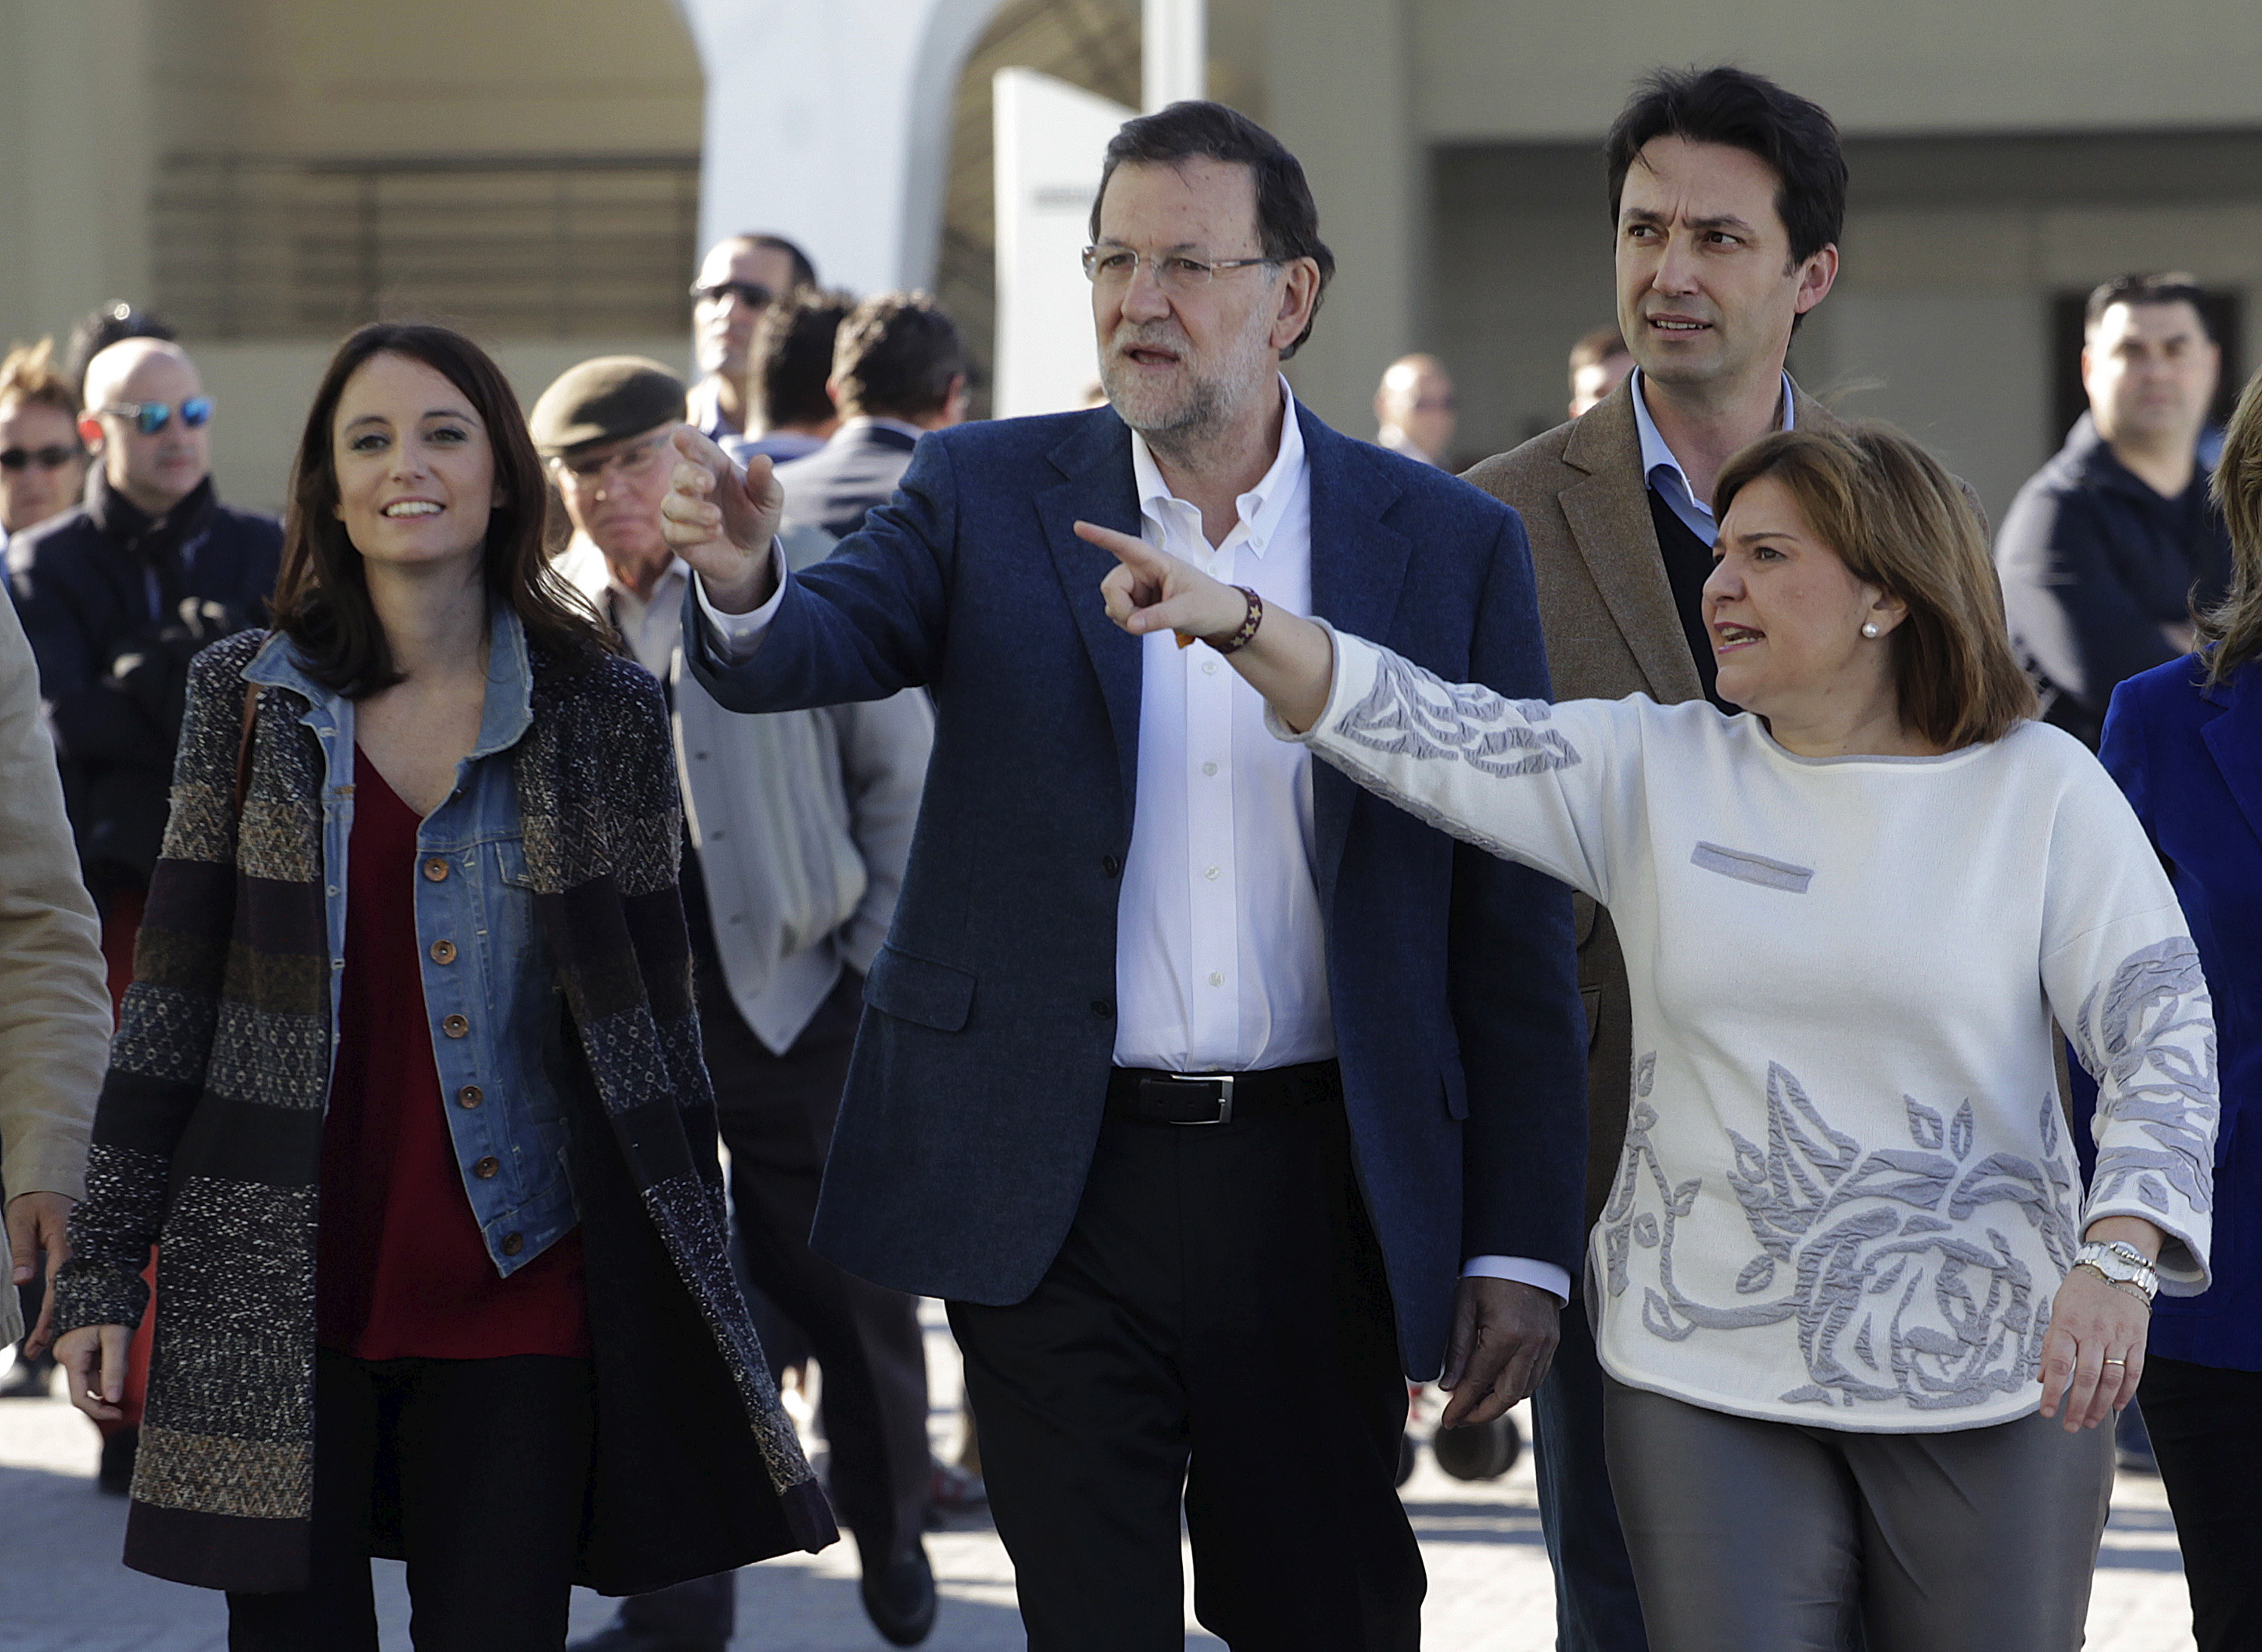 Spain's Prime Minister Mariano Rajoy (C) gestures next to regional president Isabel Bonig (R) as he arrives at a meeting with People Party's candidates for parliament and supporters ahead the upcoming general elections next month in Valencia, Spain, November 28, 2015. REUTERS/Heino Kalis - RTX1W7Z9